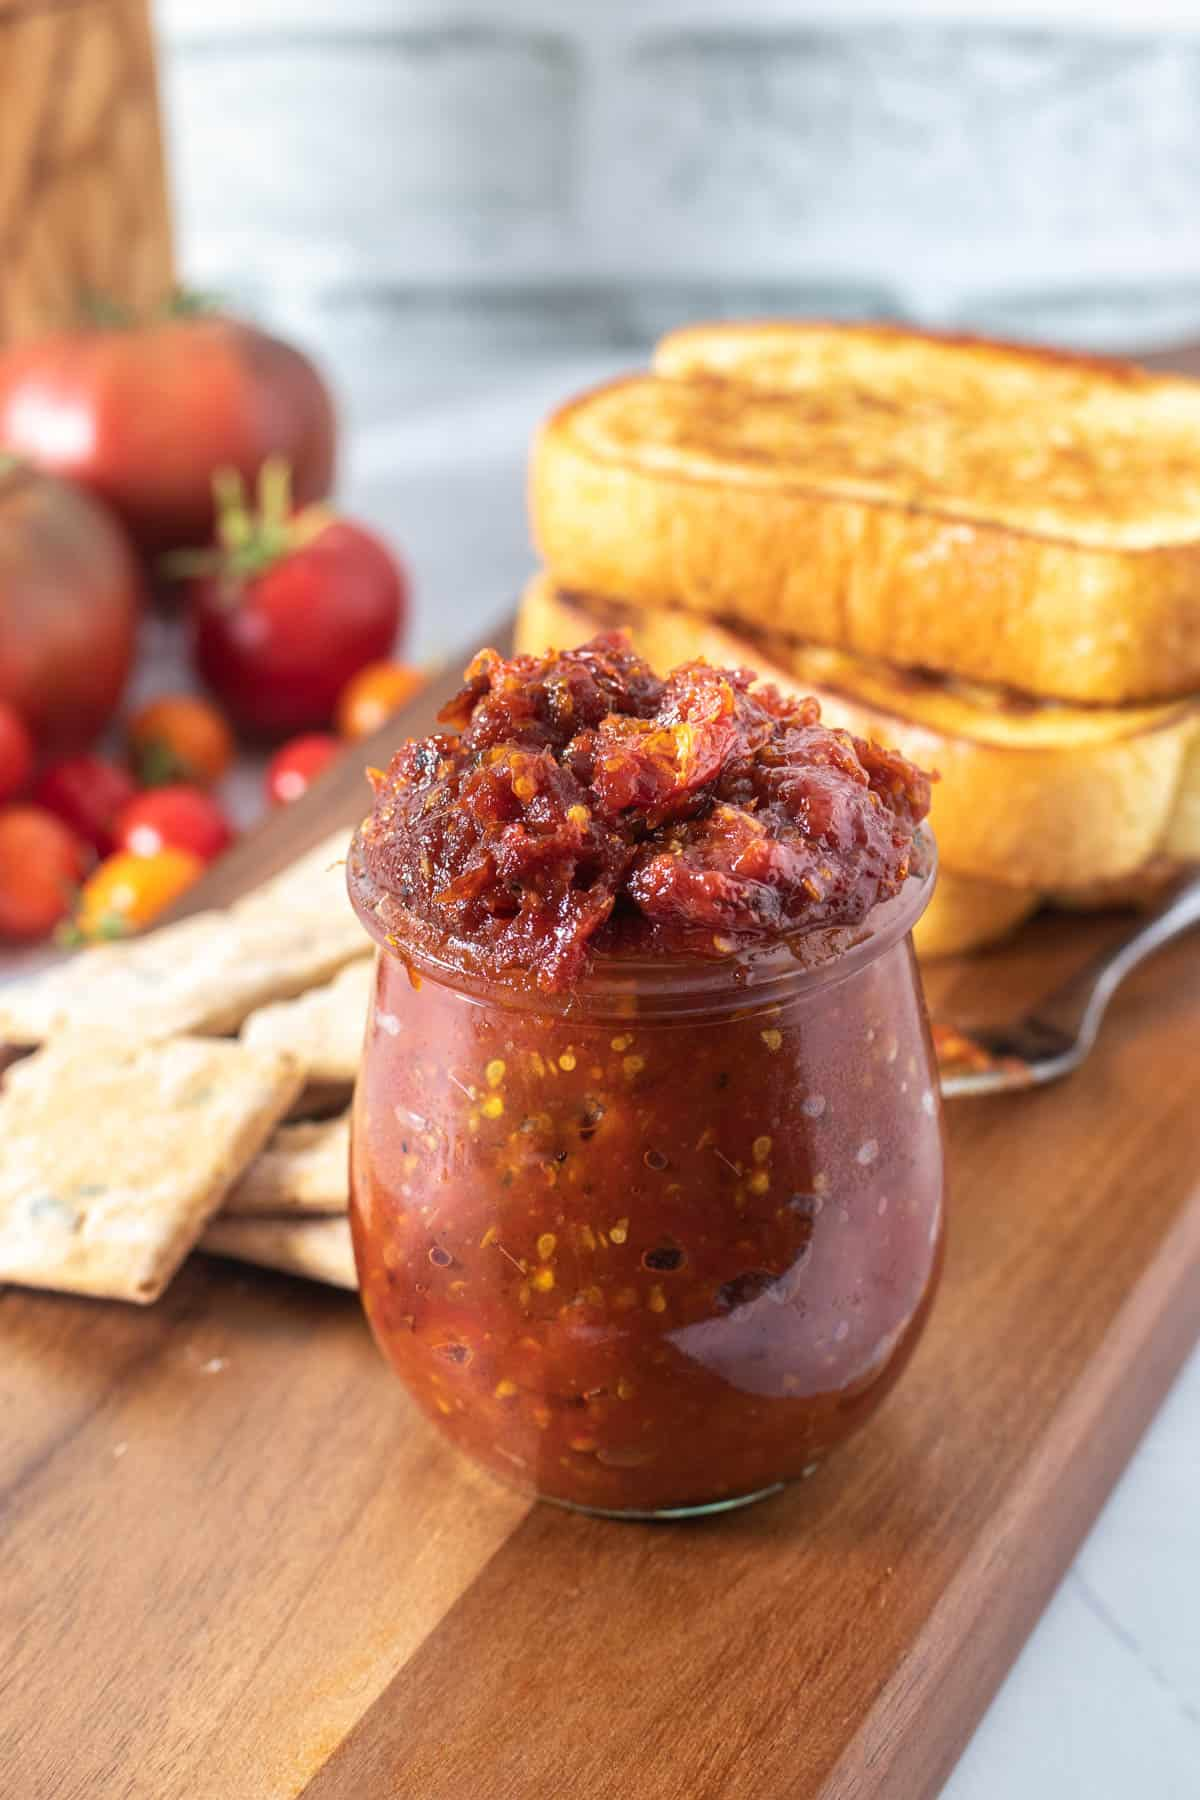 Close up of jar of tomato jam on wood platter with bread and tomatoes in background